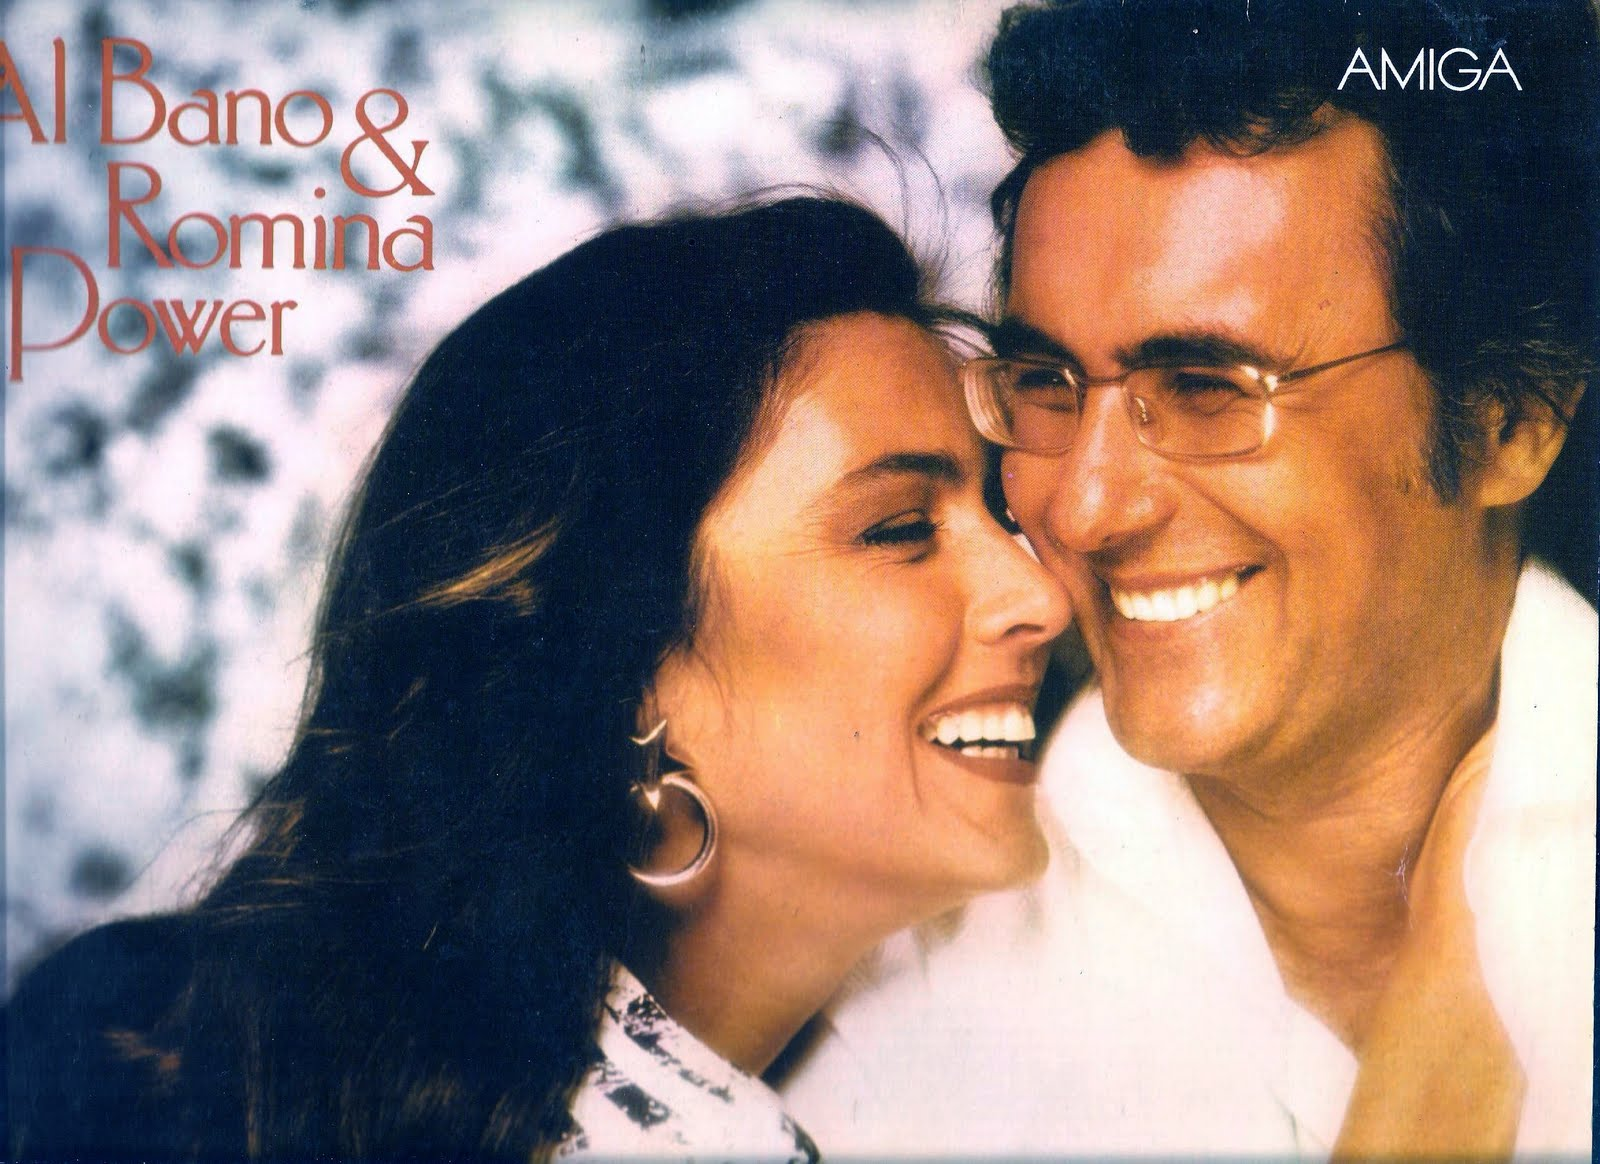 After 18 Years, Al Bano and Romina Power Will Sing Together Again